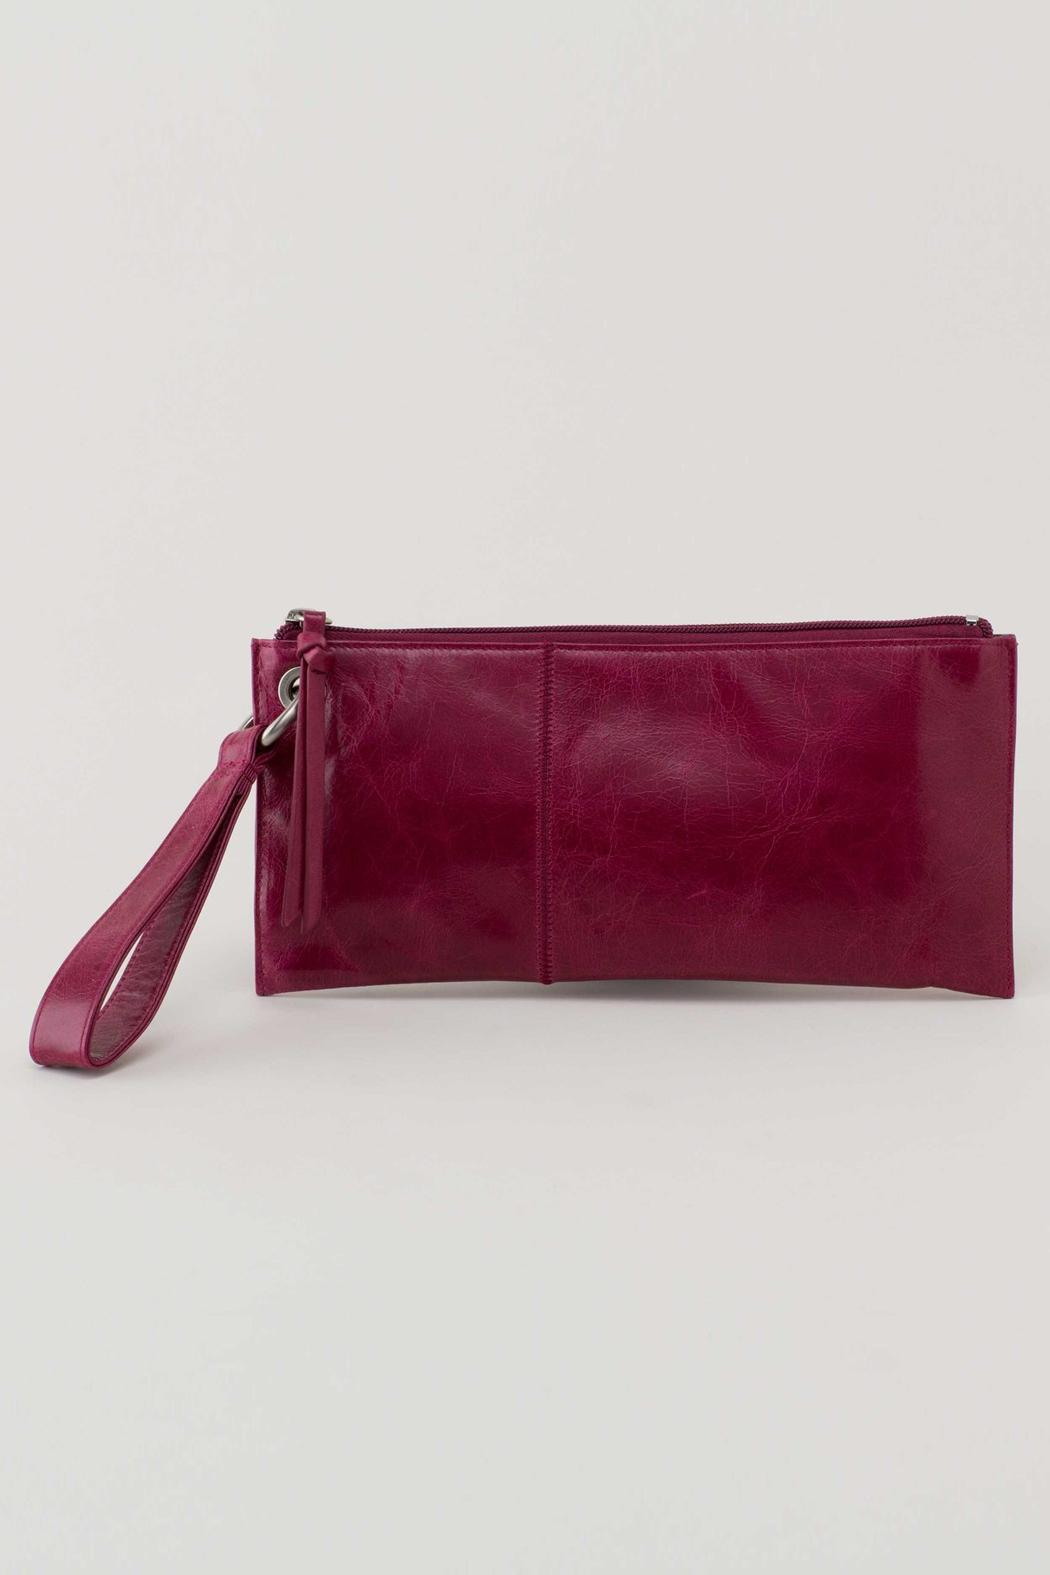 Leather Statement Clutch - THE FAIRY by VIDA VIDA